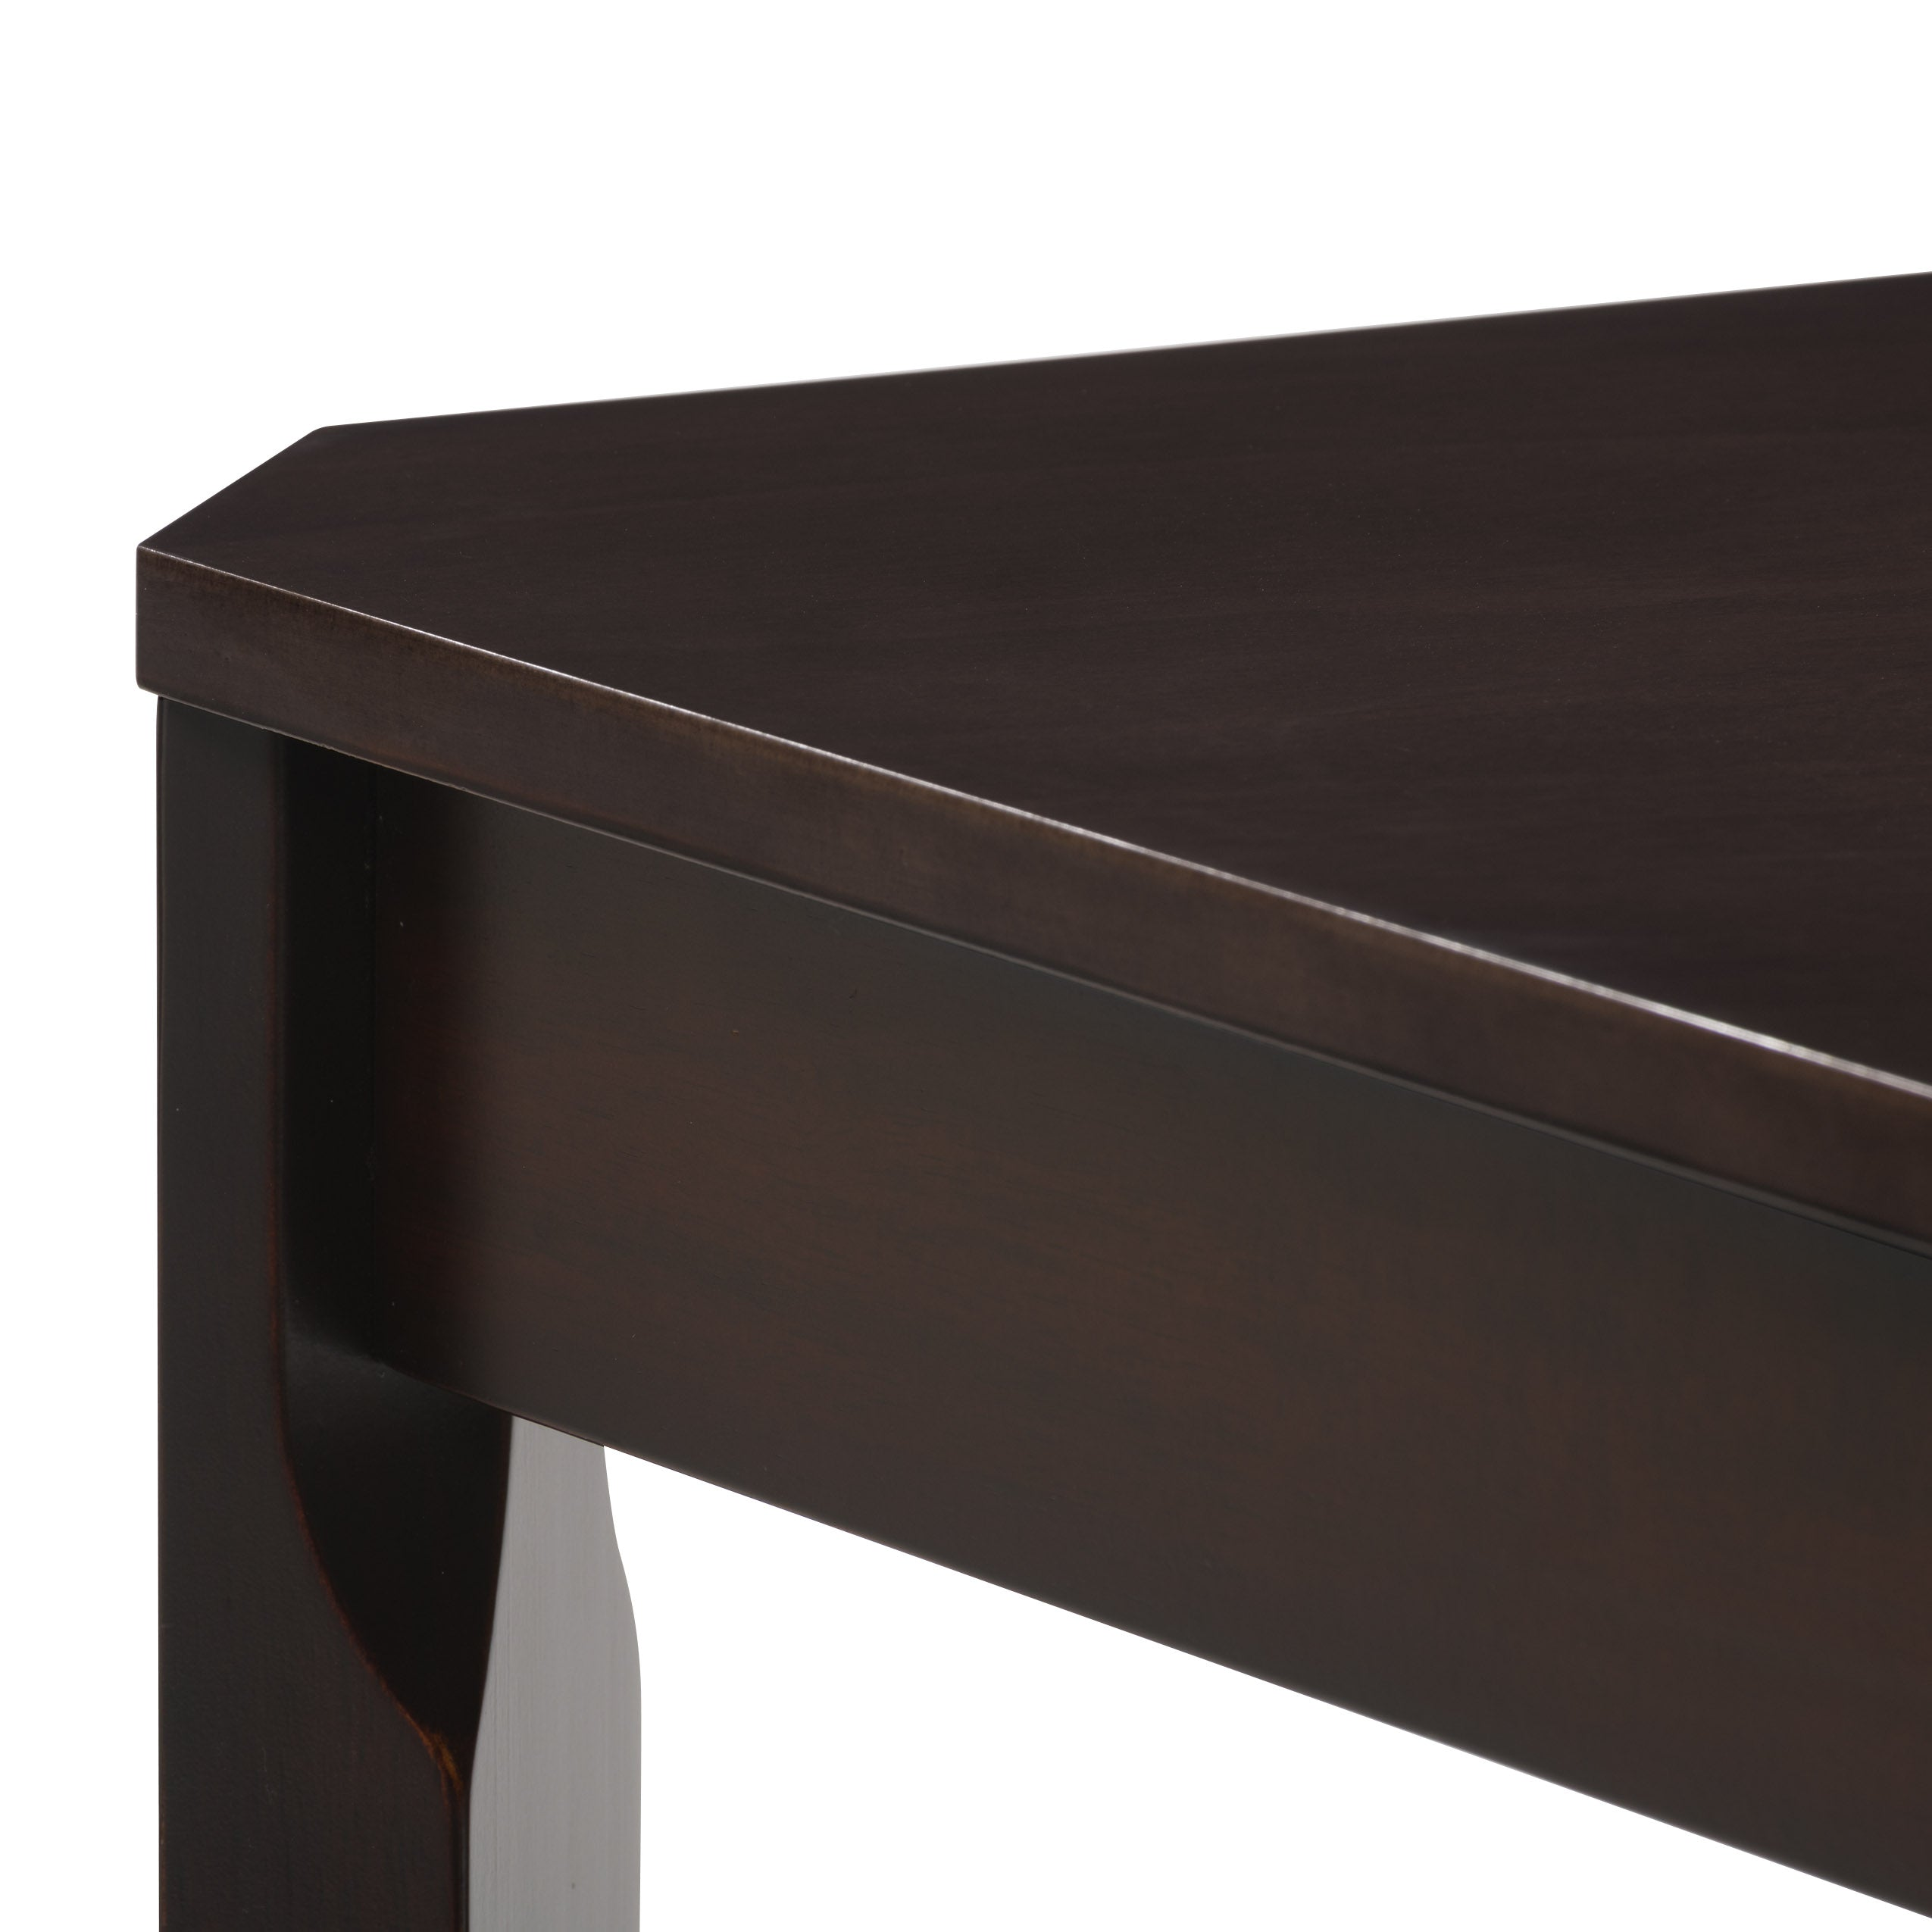 Wondrous Solid Wood Dining Table With Angled Corners Clearance Home Remodeling Inspirations Basidirectenergyitoicom